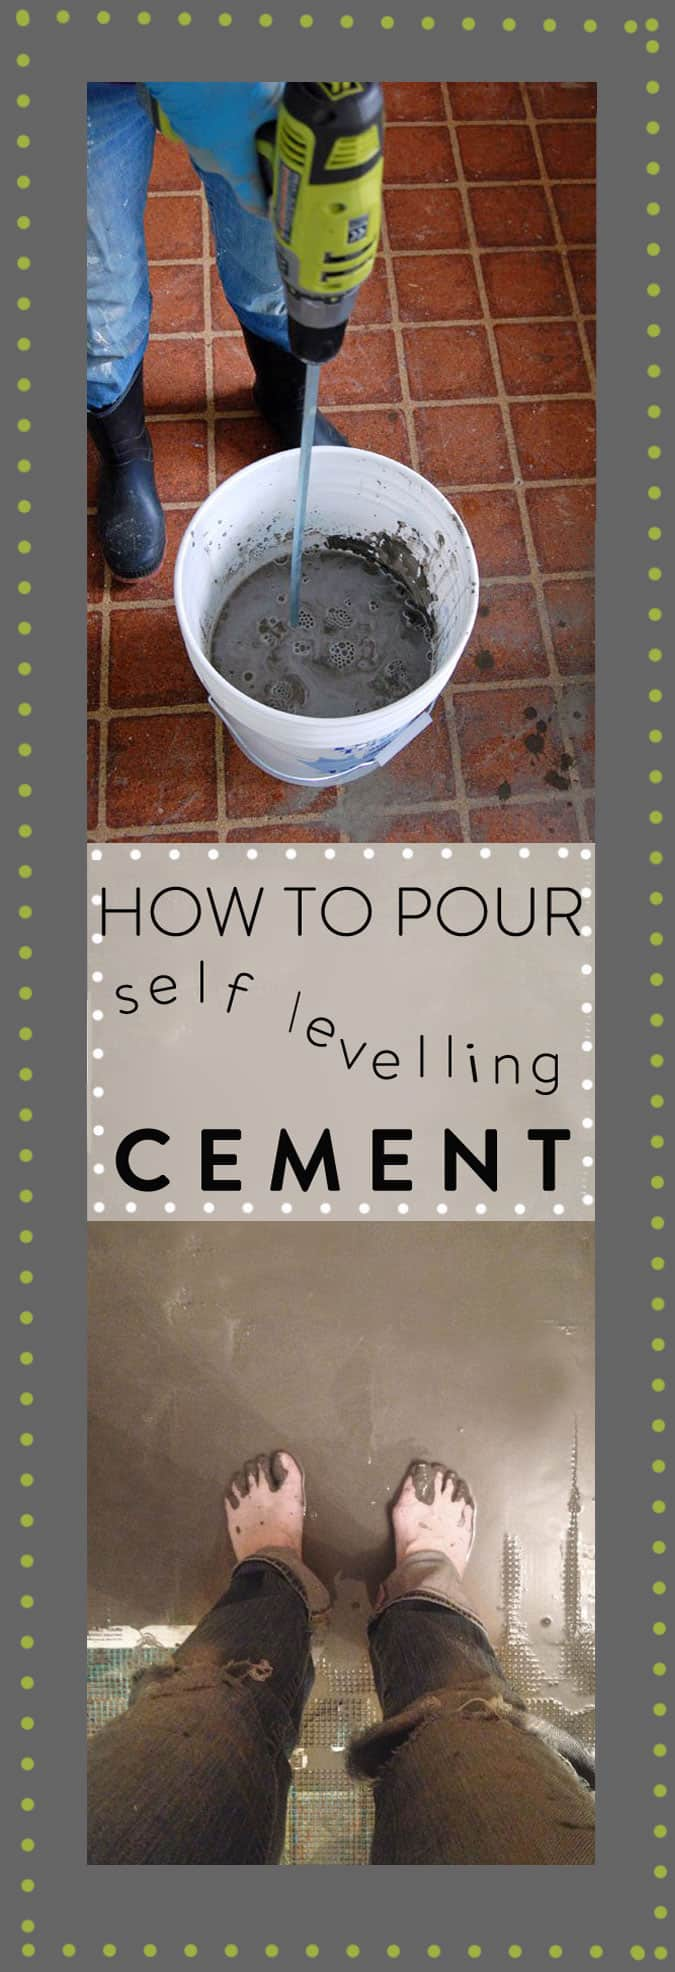 How to pour self levelling cement yourselfe art of doing stuff how to pour self levelling cement 2 solutioingenieria Image collections